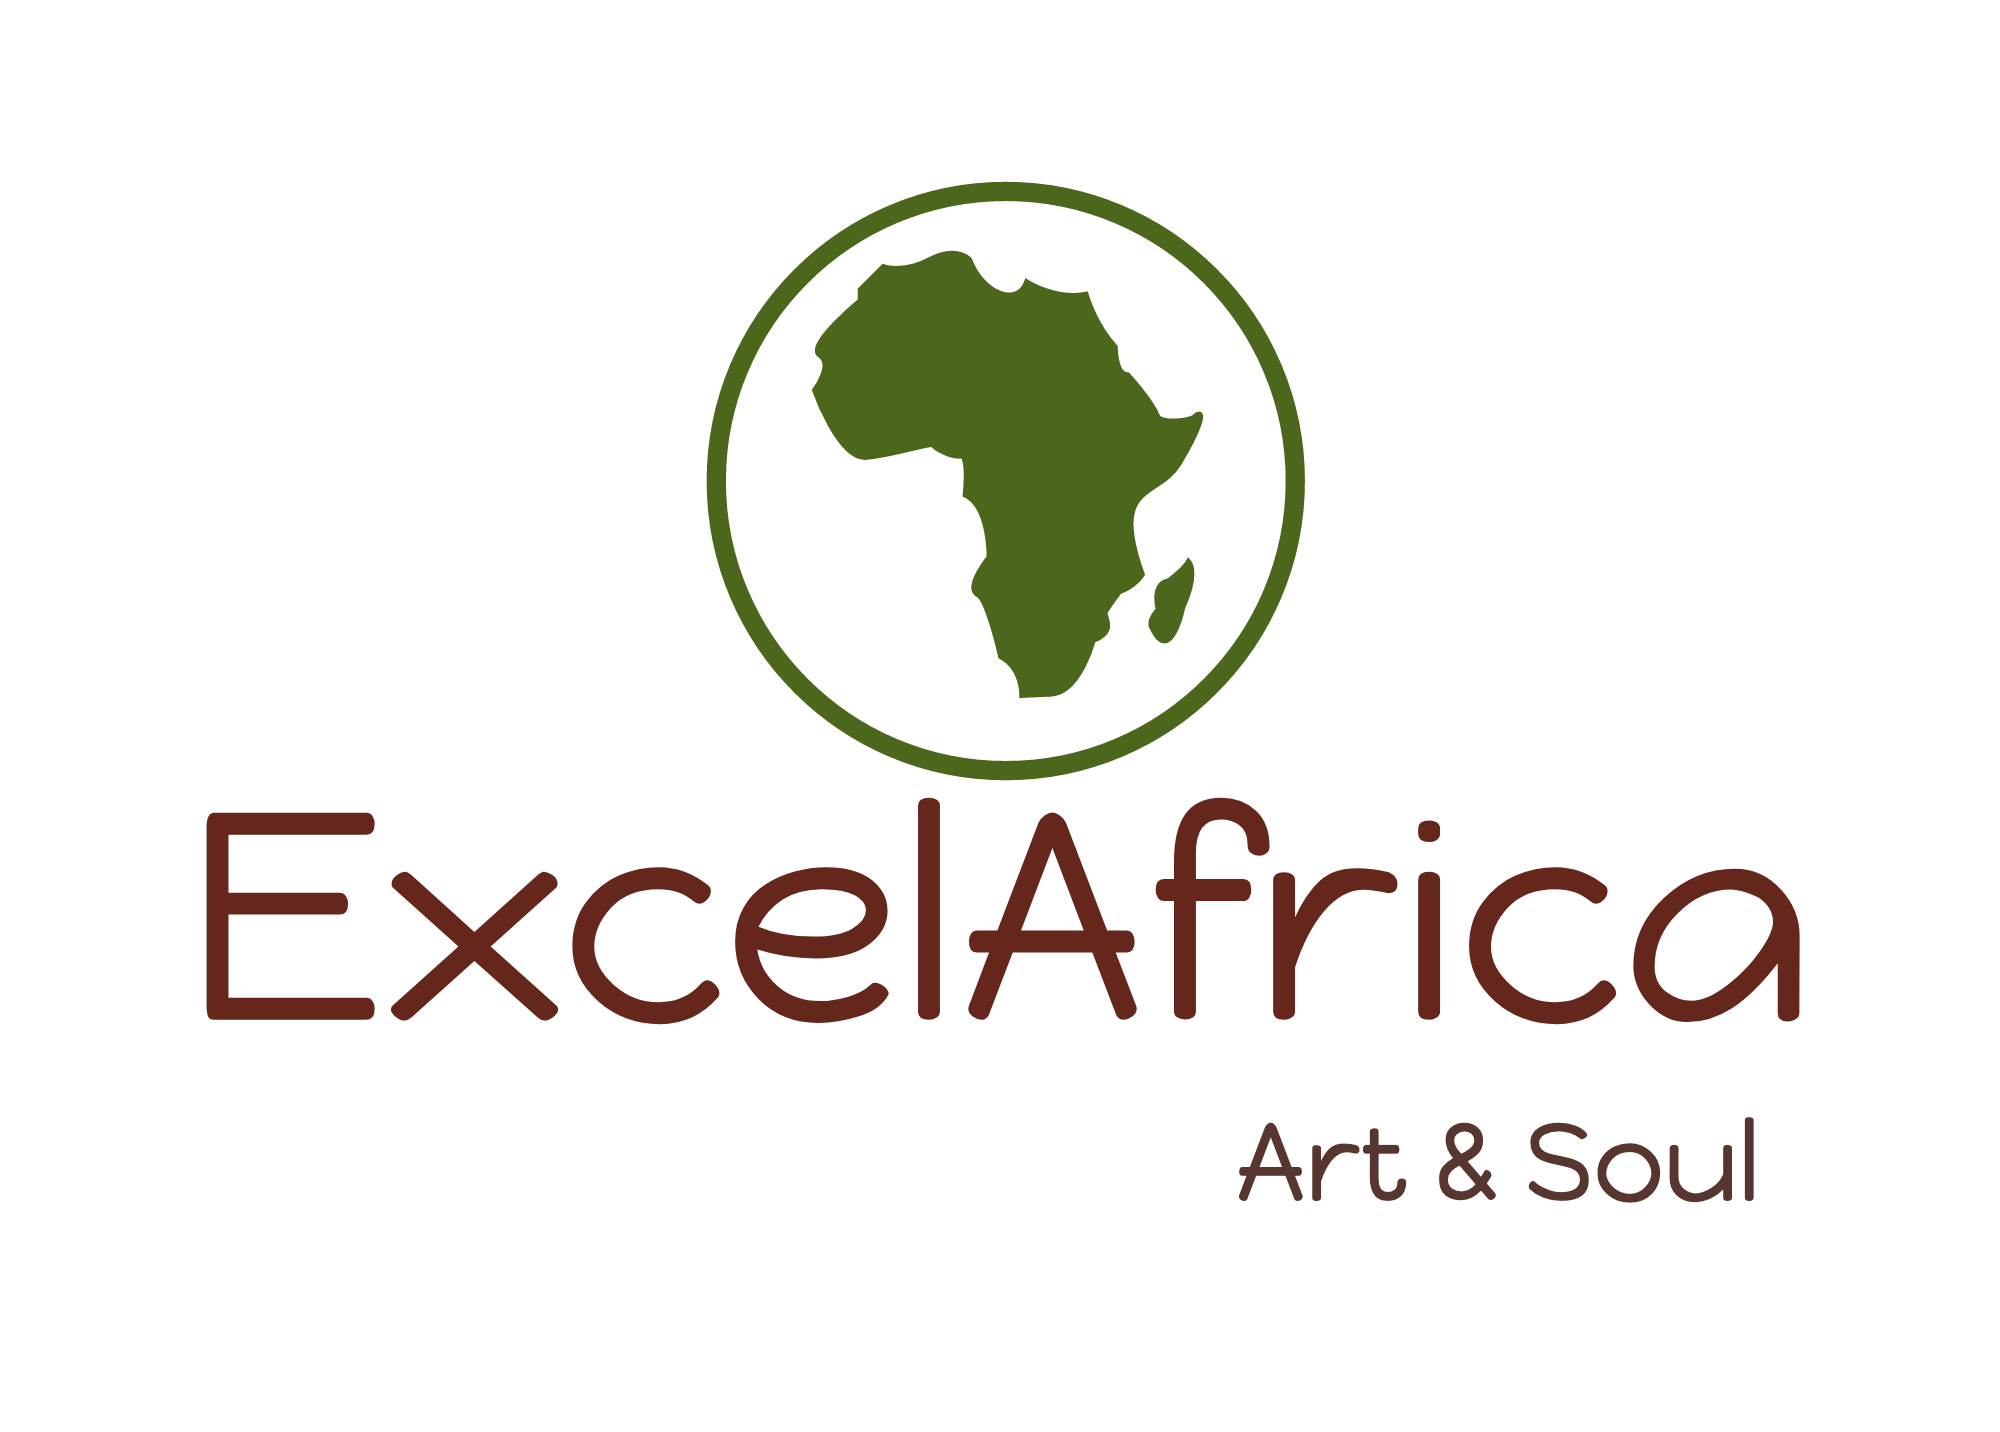 ExcelAfrica-logo (1).png